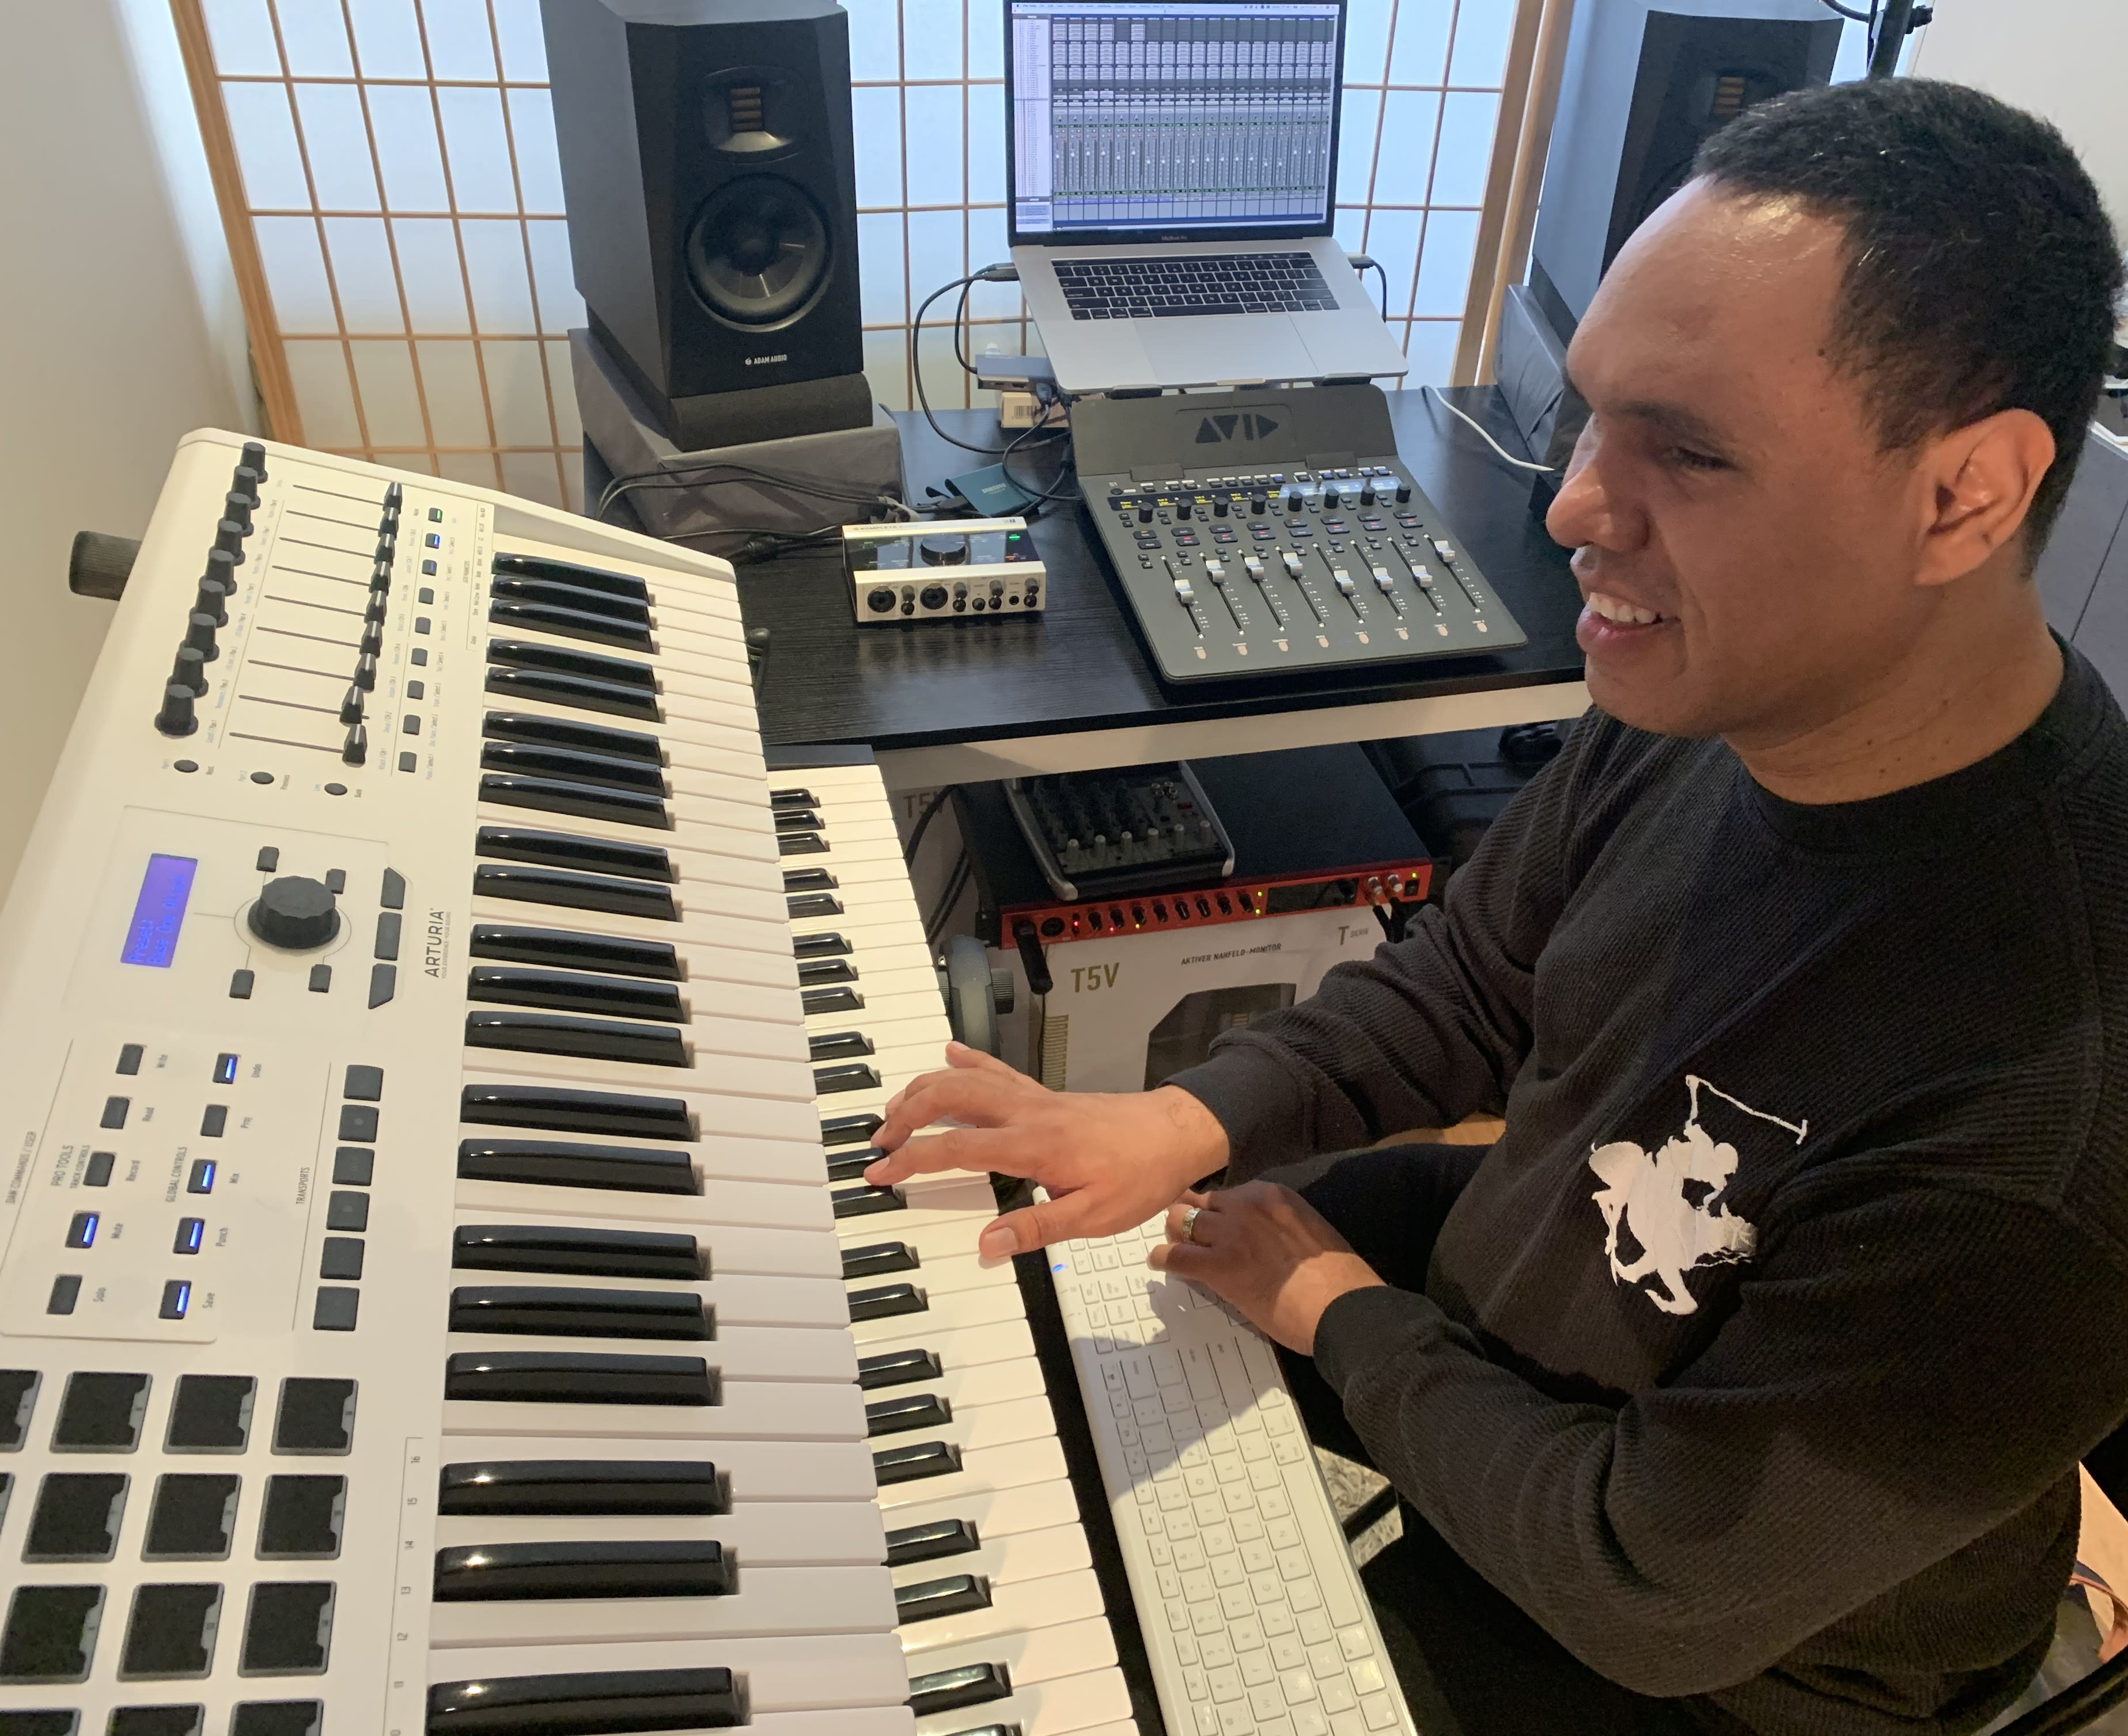 Visually impaired audio engineer Jason Dasent sits in a studio, with his right hand on a keyboard in front of him.